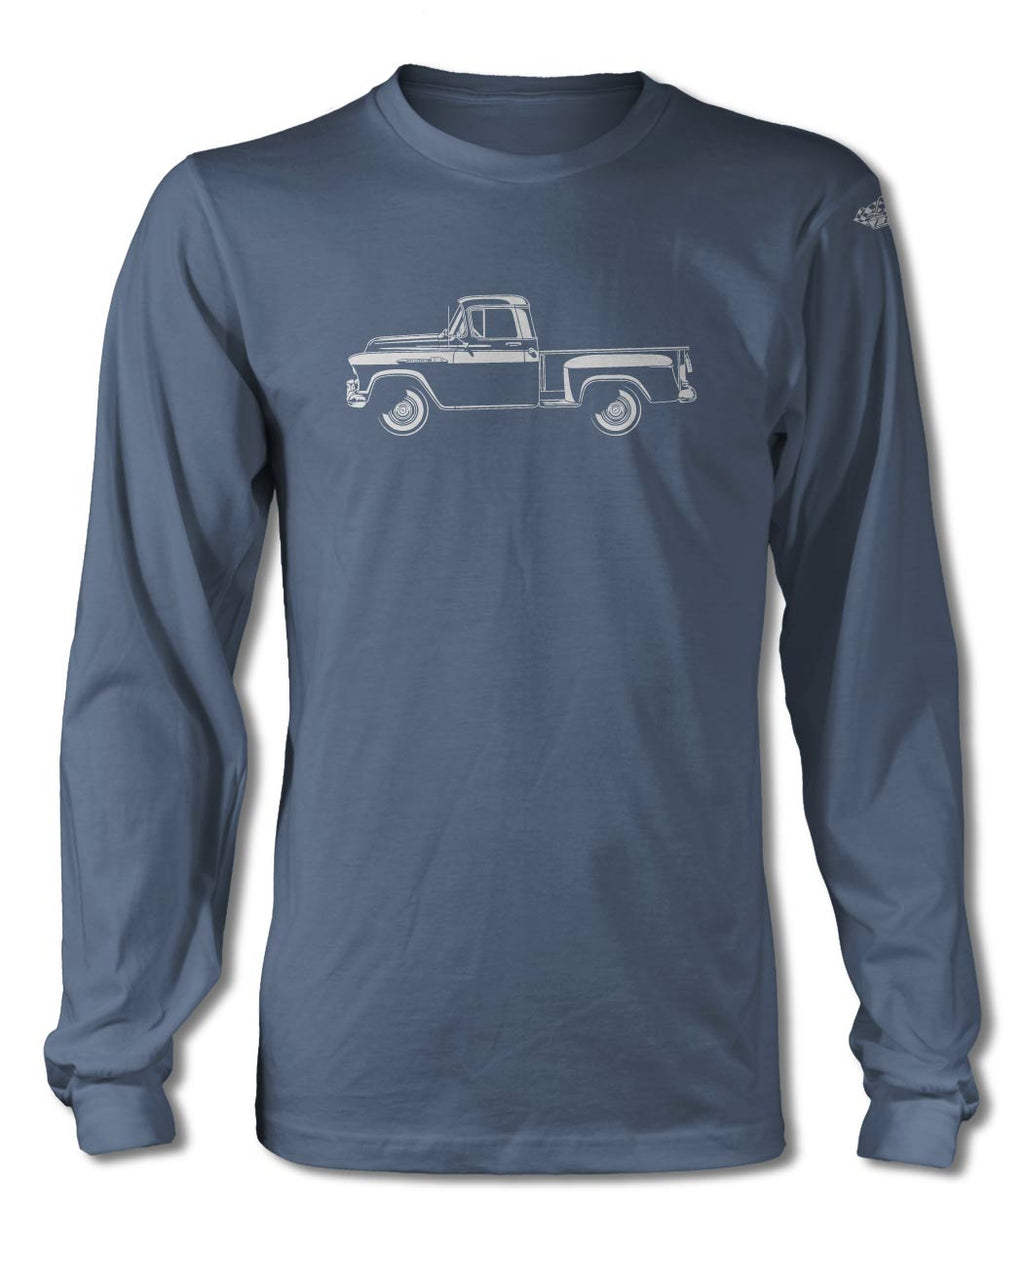 1956 Chevrolet Pickup 3100 T-Shirt - Long Sleeves - Side View